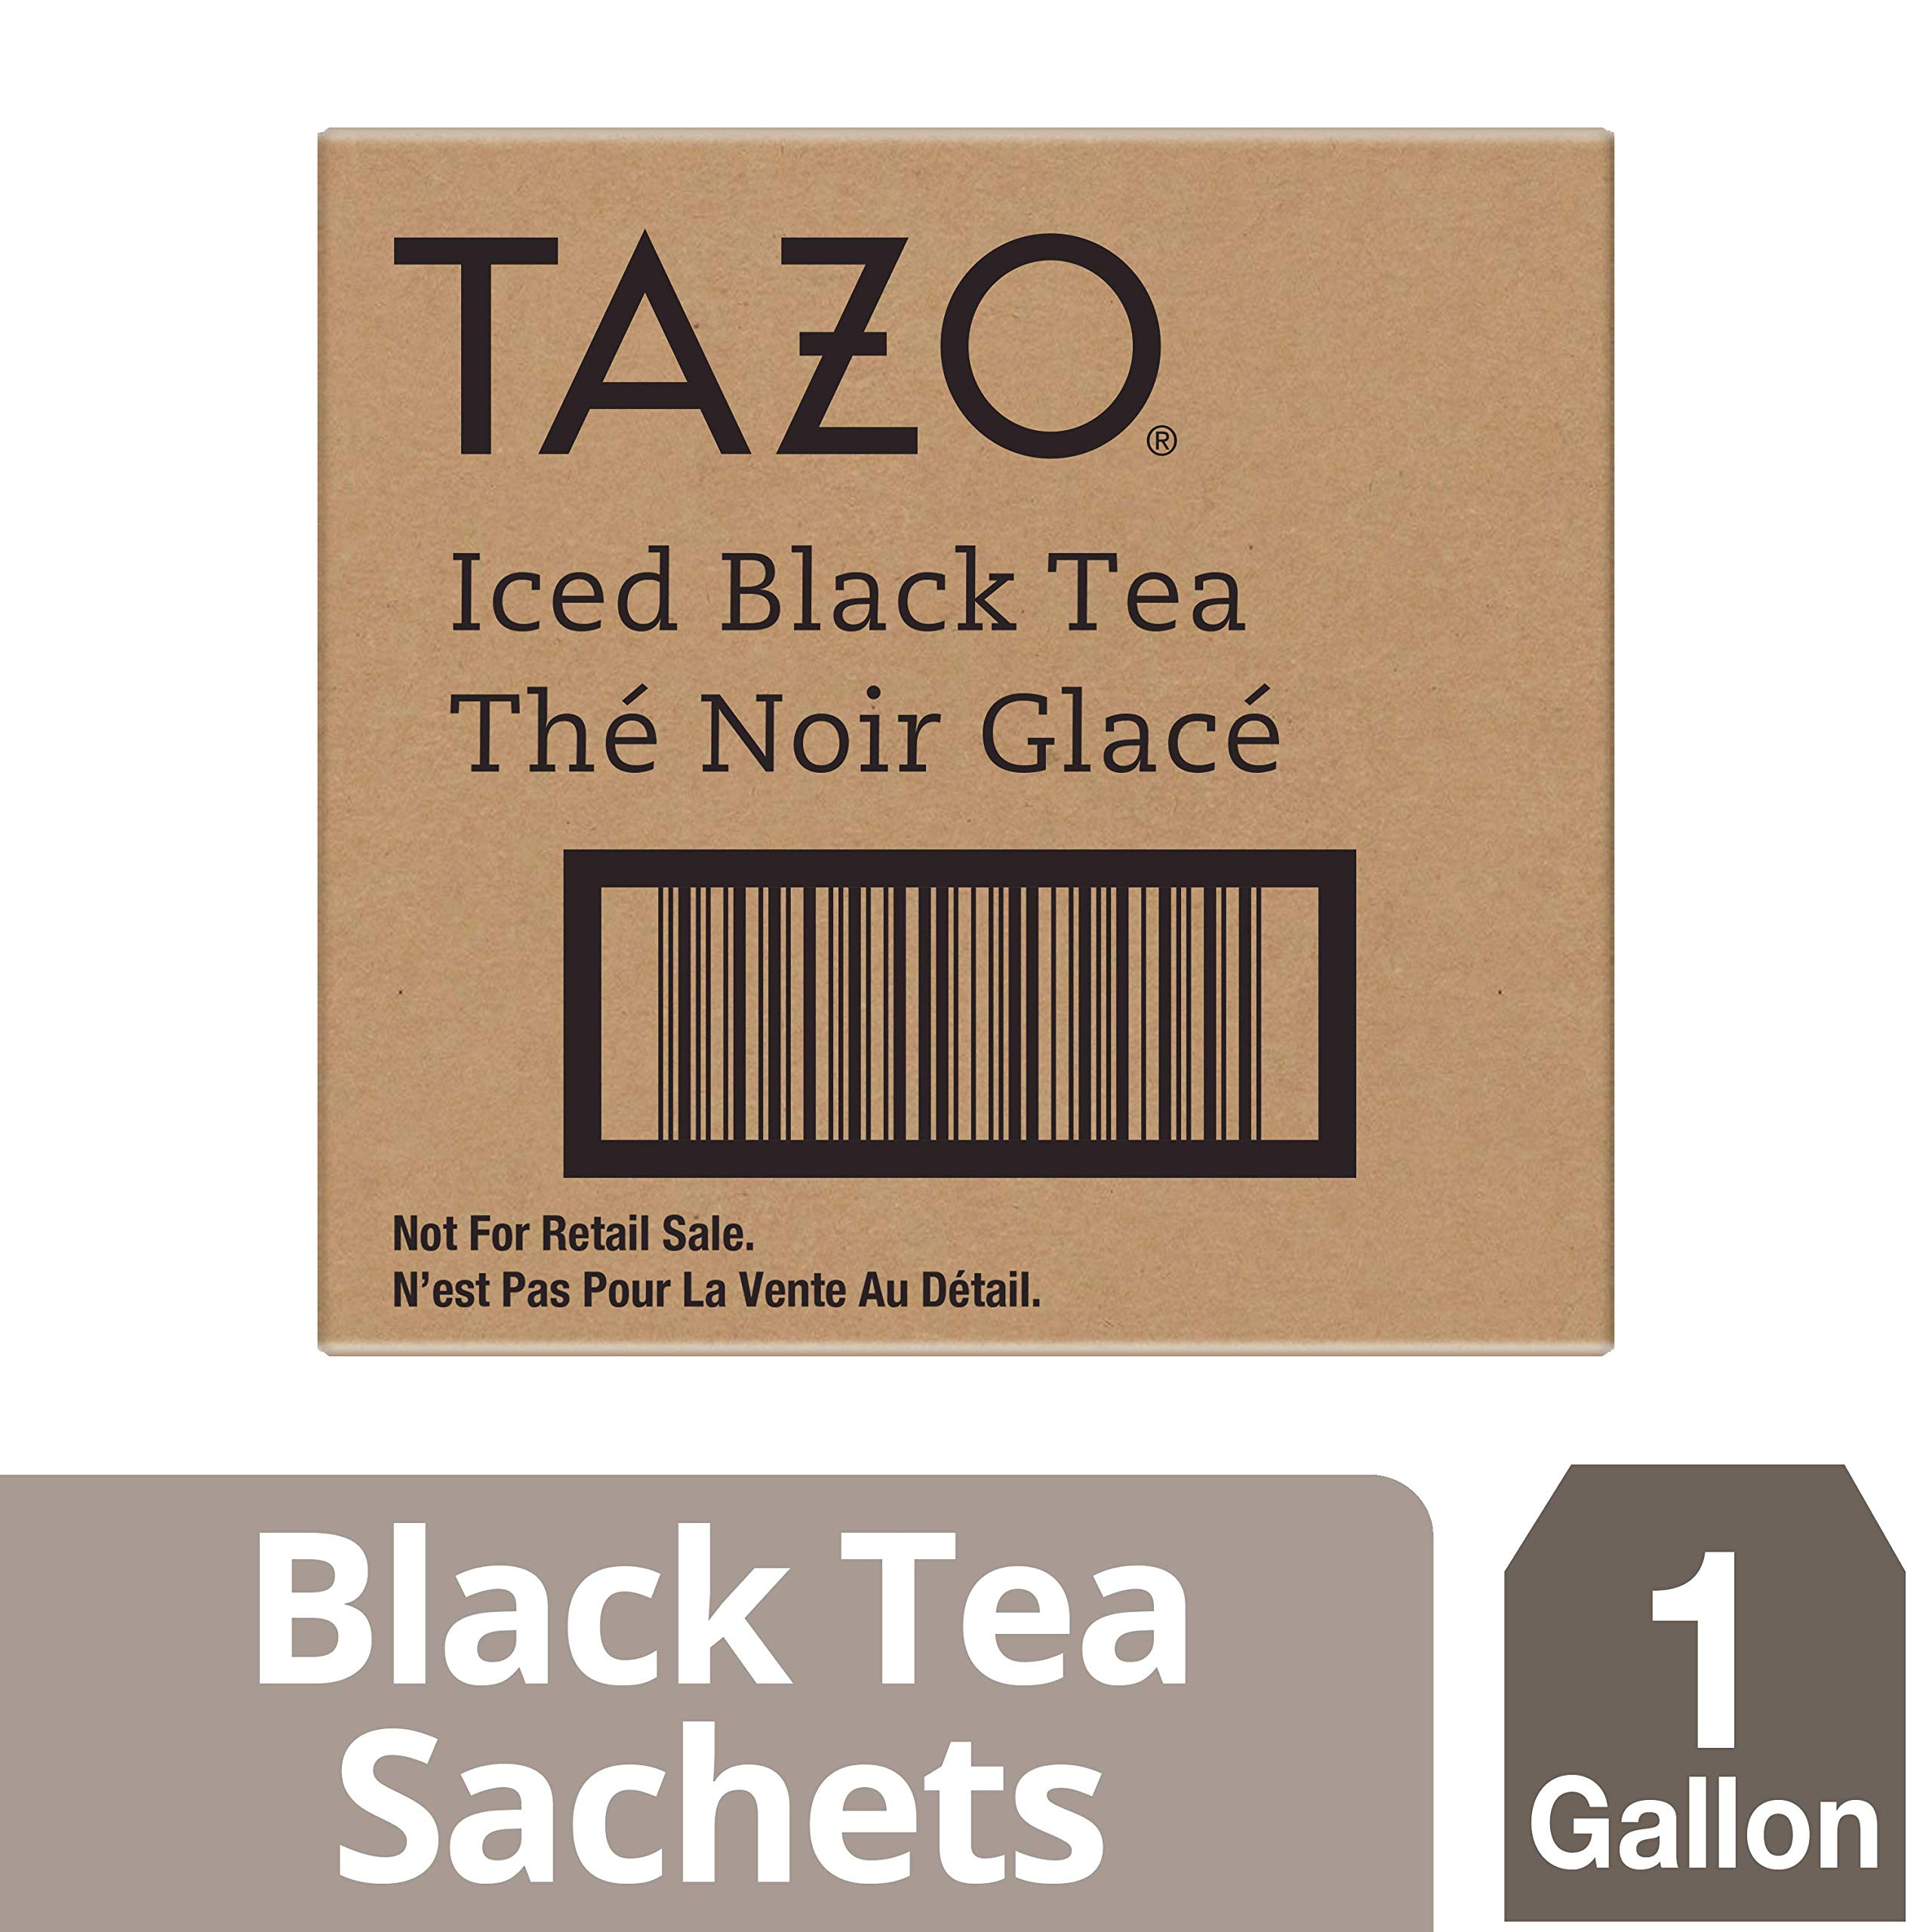 Tazo Black Unsweetened Fresh Brewed Iced Tea Non GMO, 1 gallon, Pack of 20 by Tazo